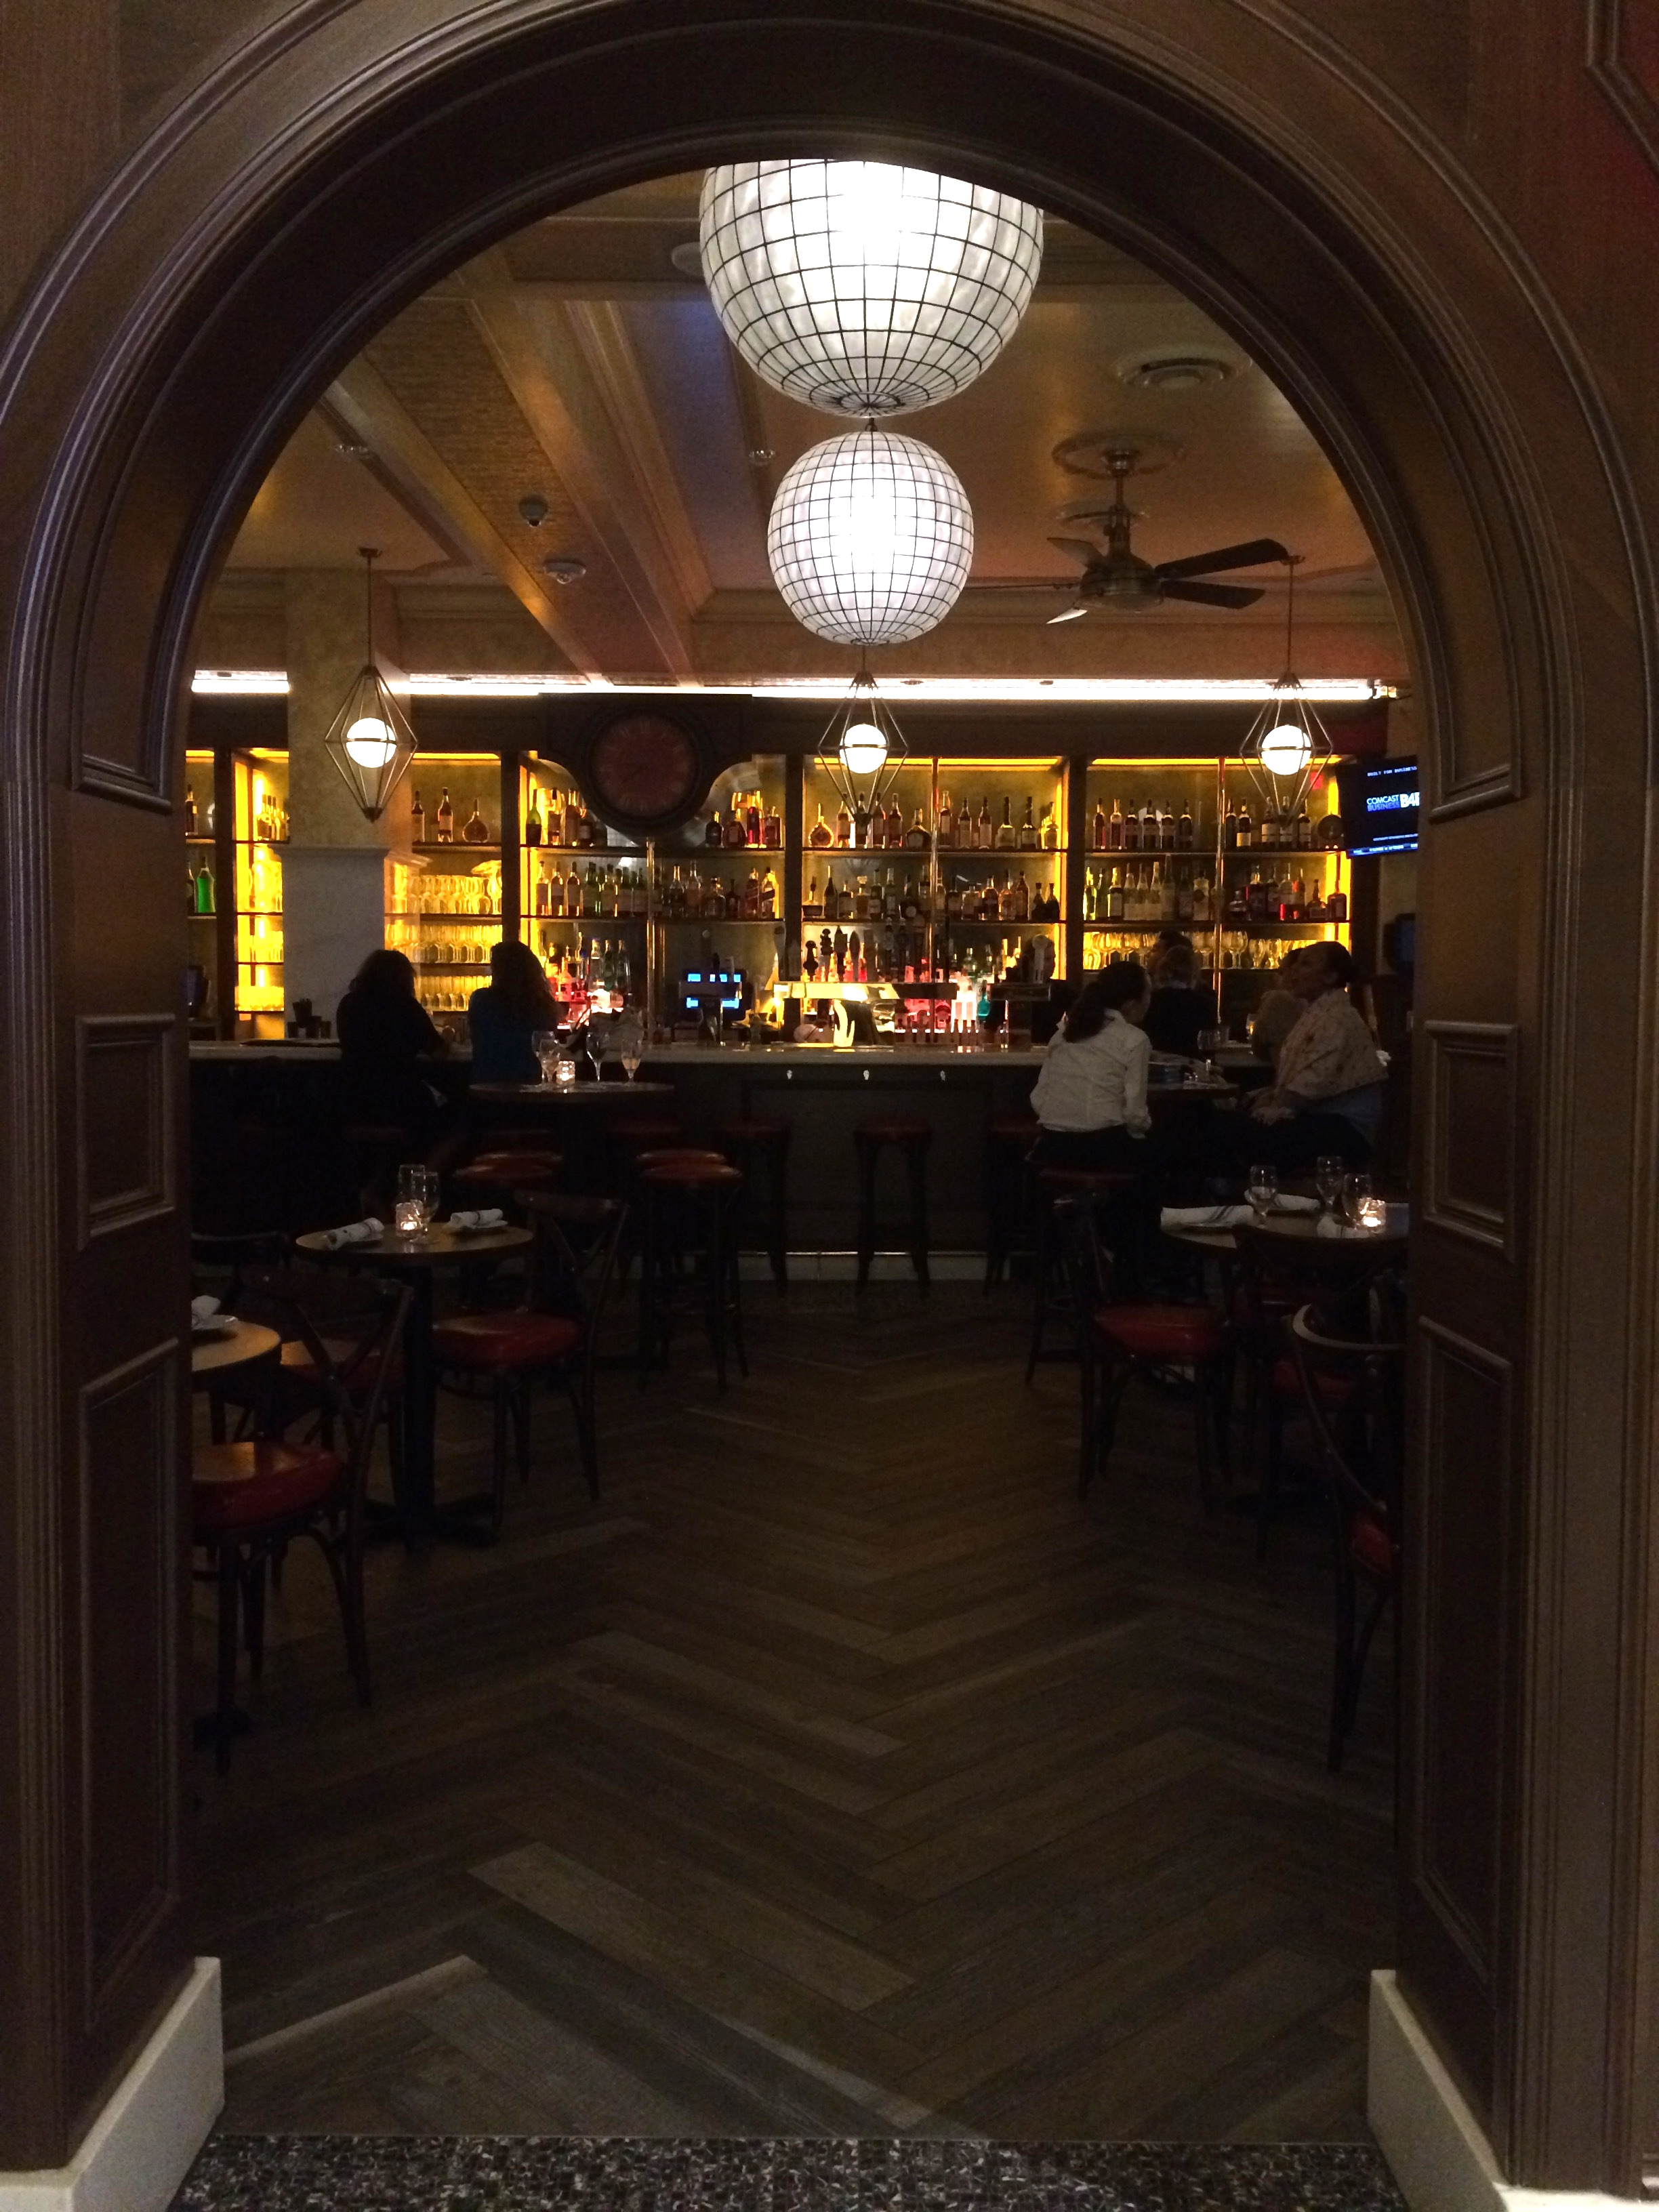 Looking into the bar as you walk in - love the floors!